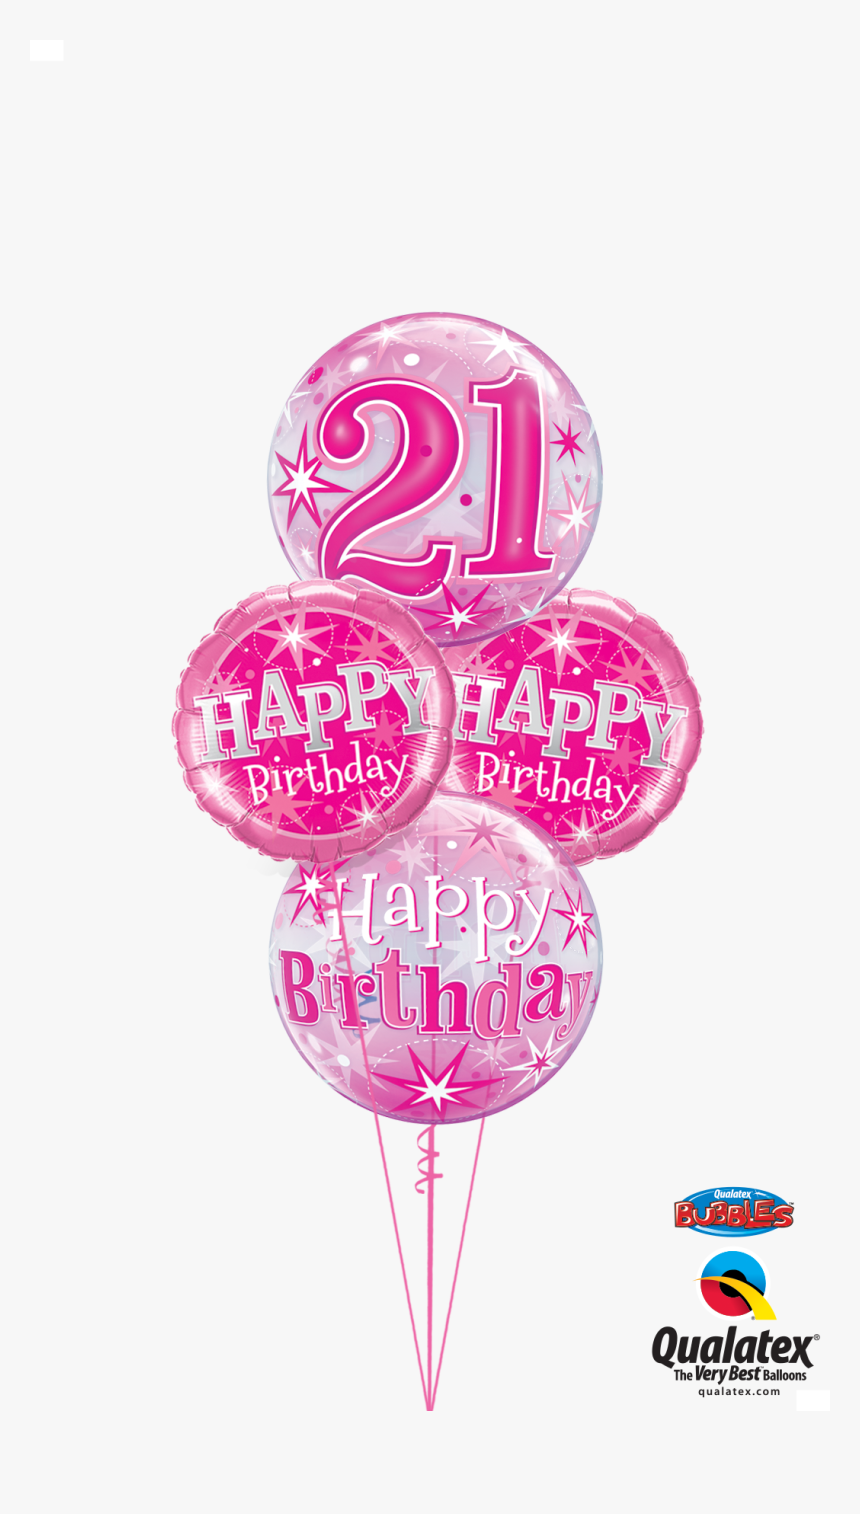 Happy 21th Birthday Png - Pink 21st Birthday - Pink Happy 21st Birthday, HD Png Download ...